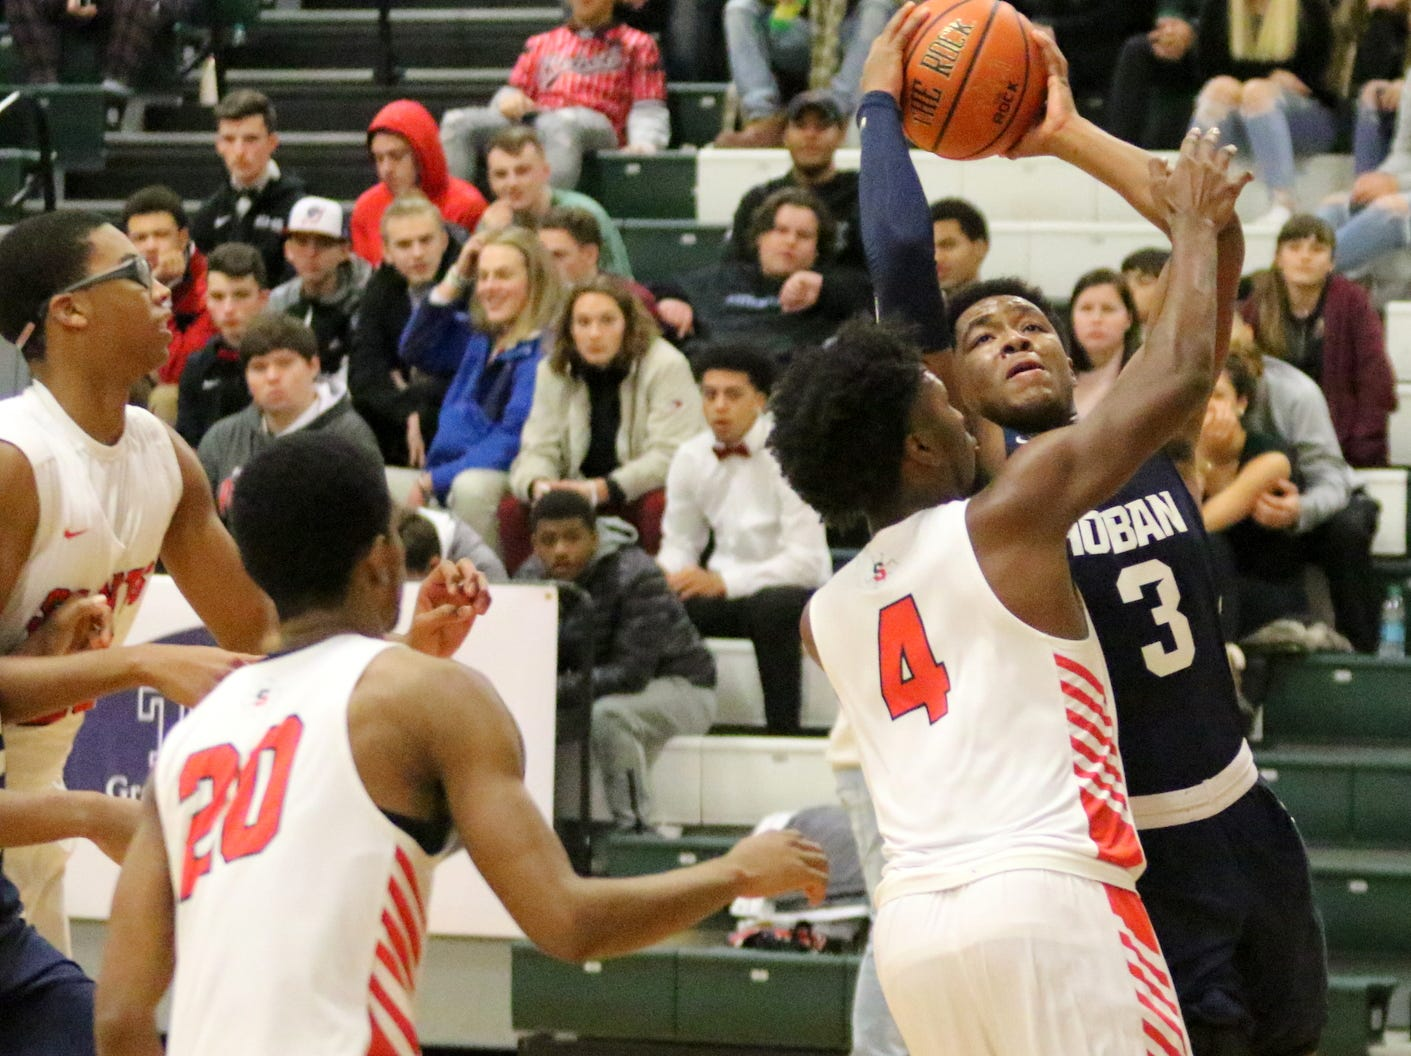 St. Stephens/St. Agnes was a 61-53 winner over Archbishop Hoban in a National Division semifinal at the Josh Palmer Fund Elmira Holiday Inn Classic on Dec. 29, 2018 at Elmira High School.